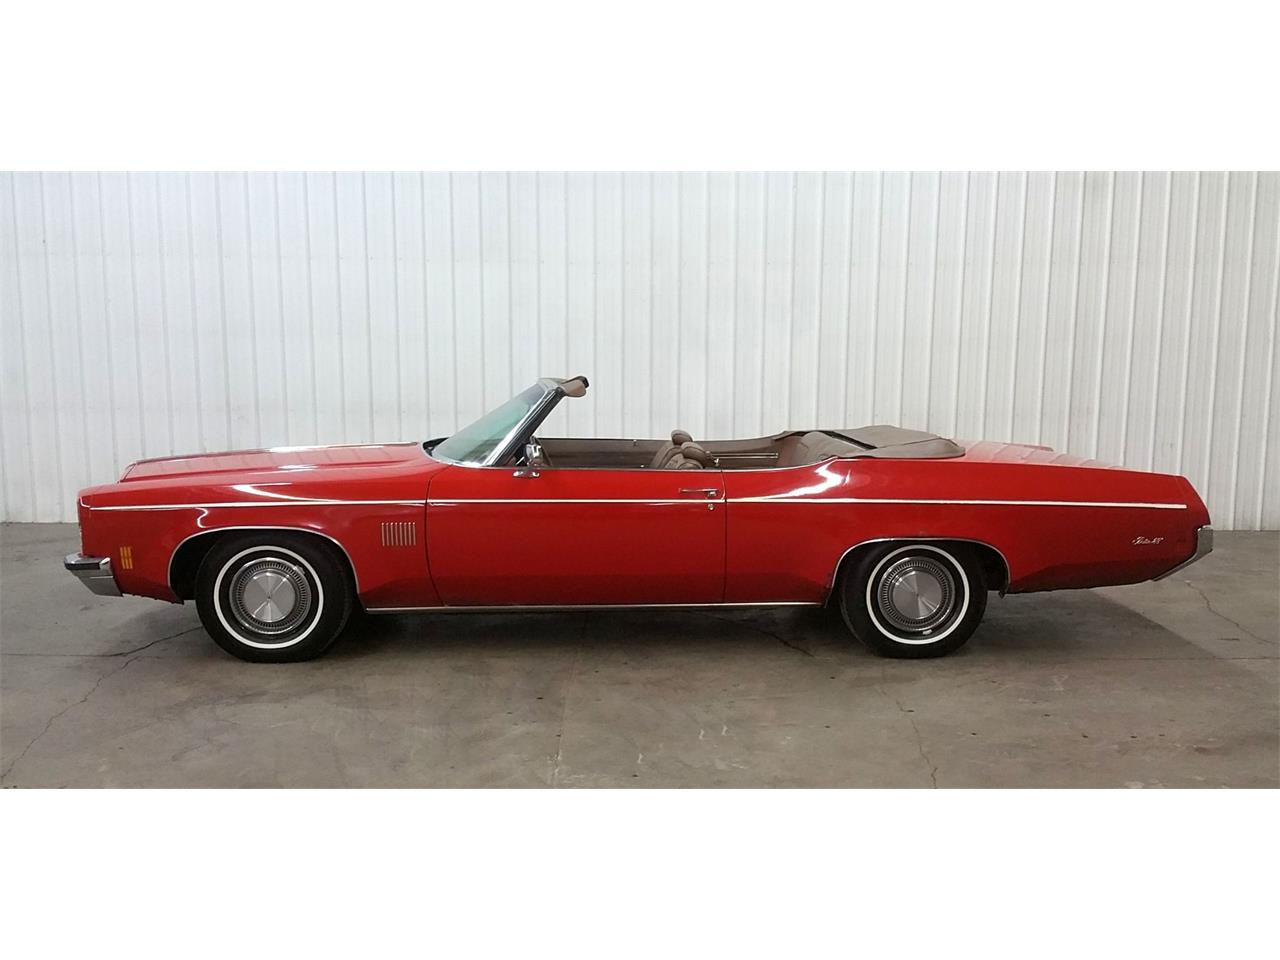 Large Picture of 1972 Oldsmobile 2-Dr Sedan located in Maple Lake Minnesota - $12,950.00 - MO6G